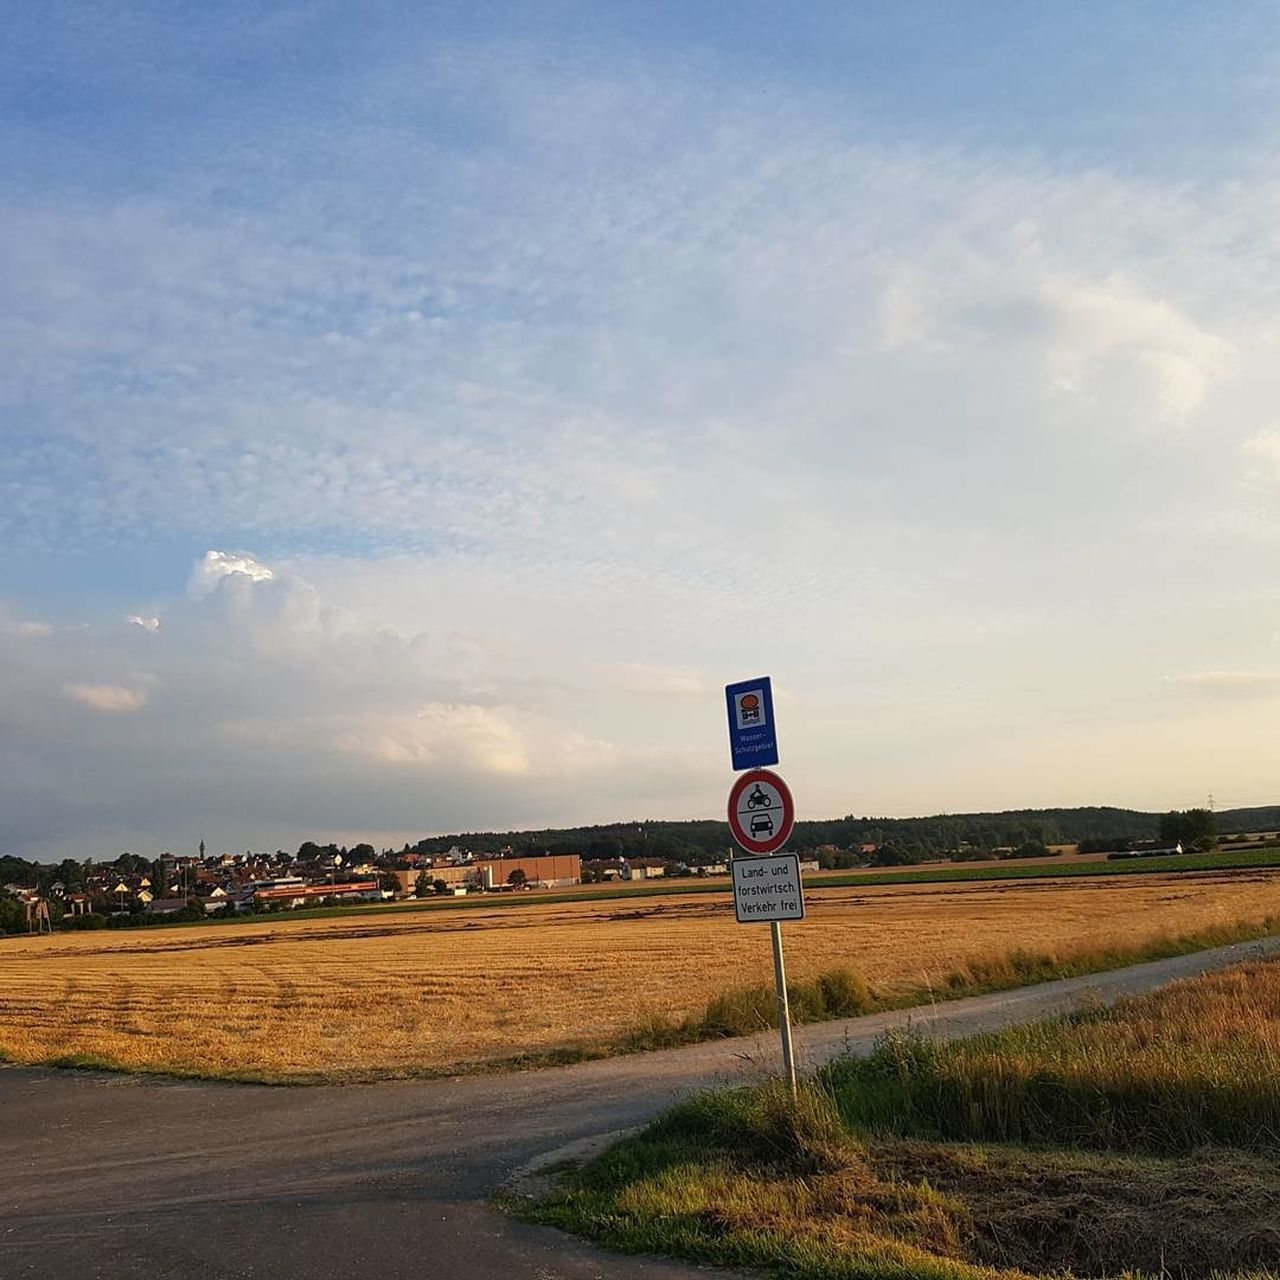 road sign, communication, speed limit sign, sky, cloud - sky, guidance, road, transportation, direction, day, no people, one way, outdoors, grass, scenics, nature, beauty in nature